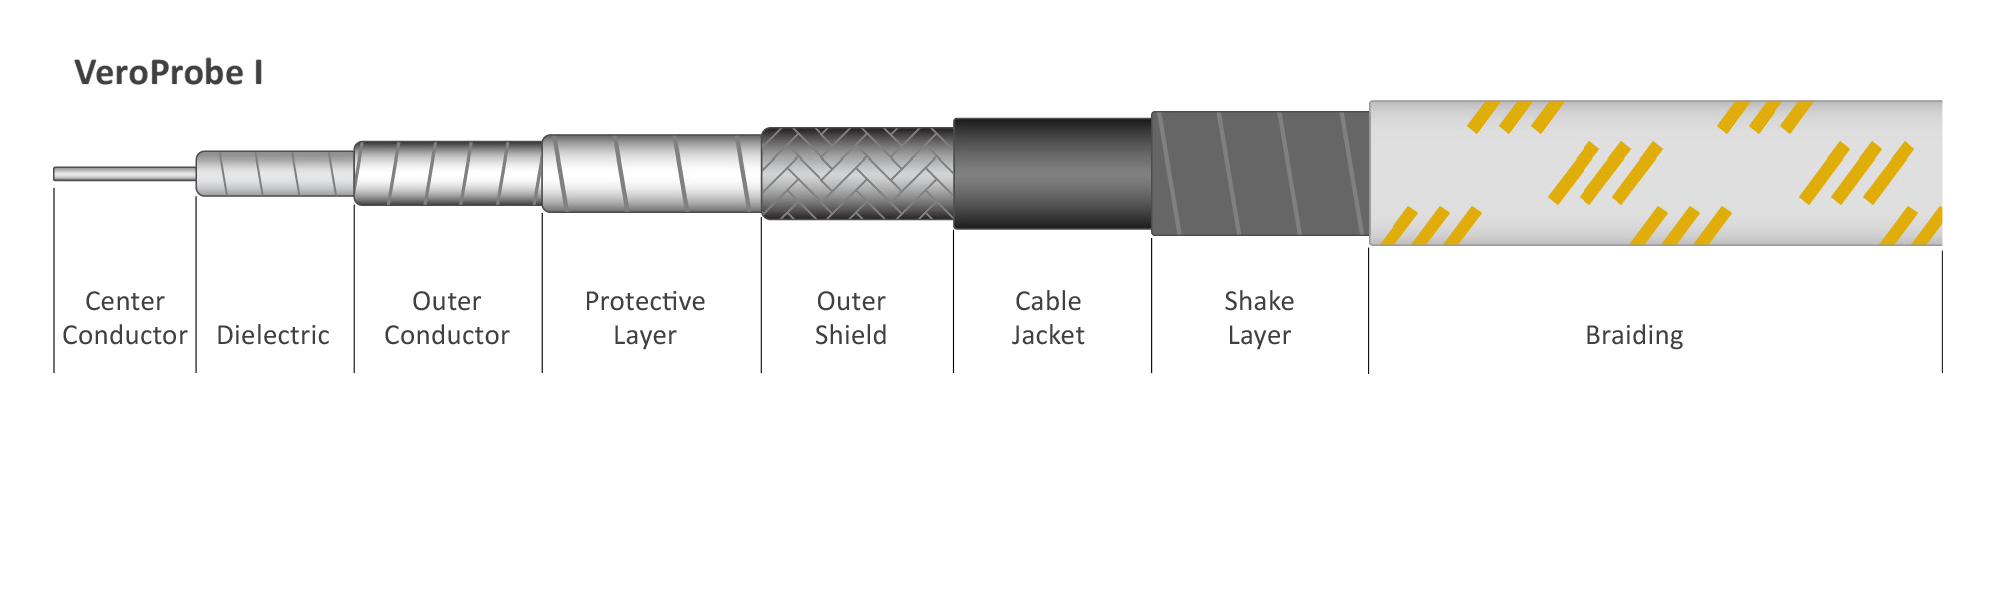 Continuum Technologies - Vero RF Cable Series - veroPROBE I - Cable Structure